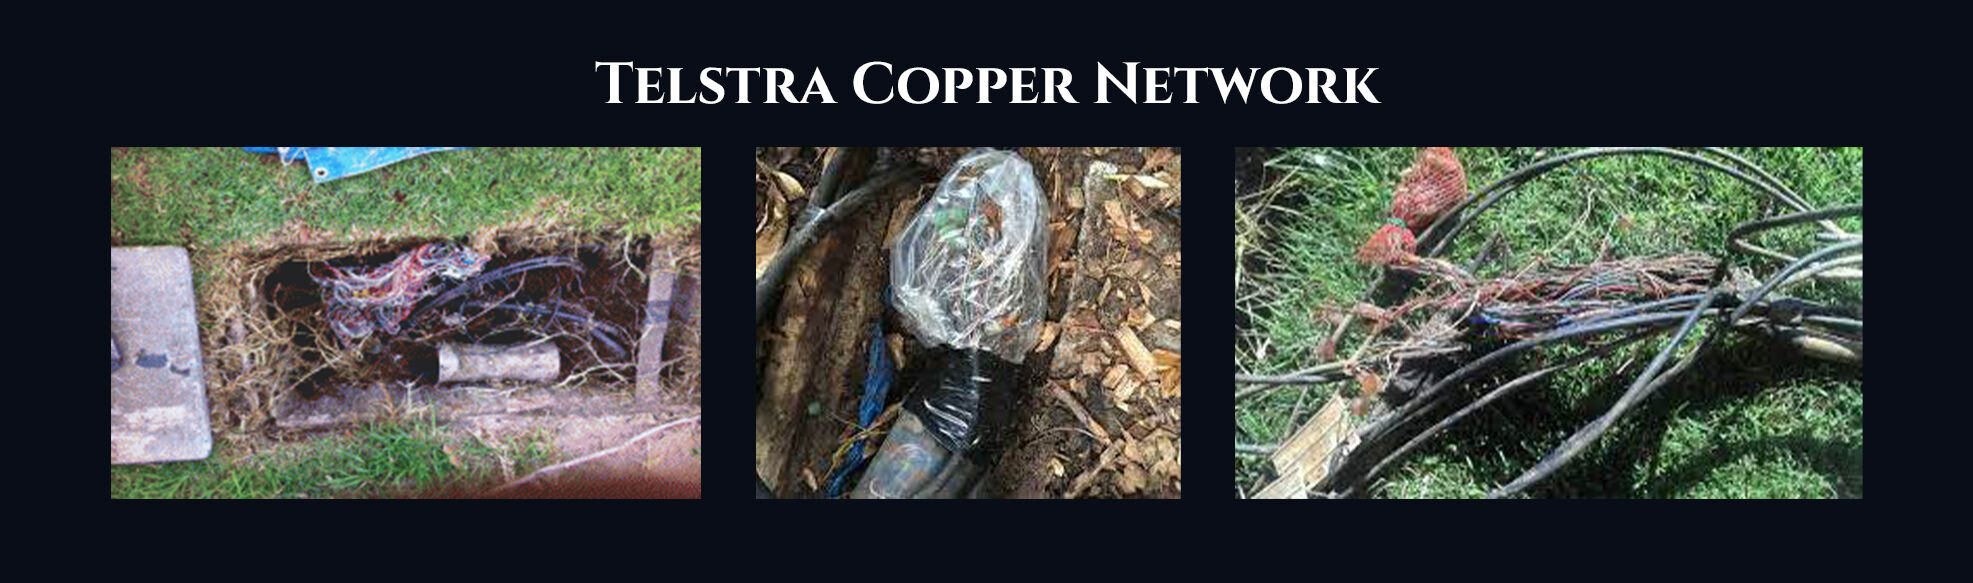 Absent Justice - Telstra Copper Network